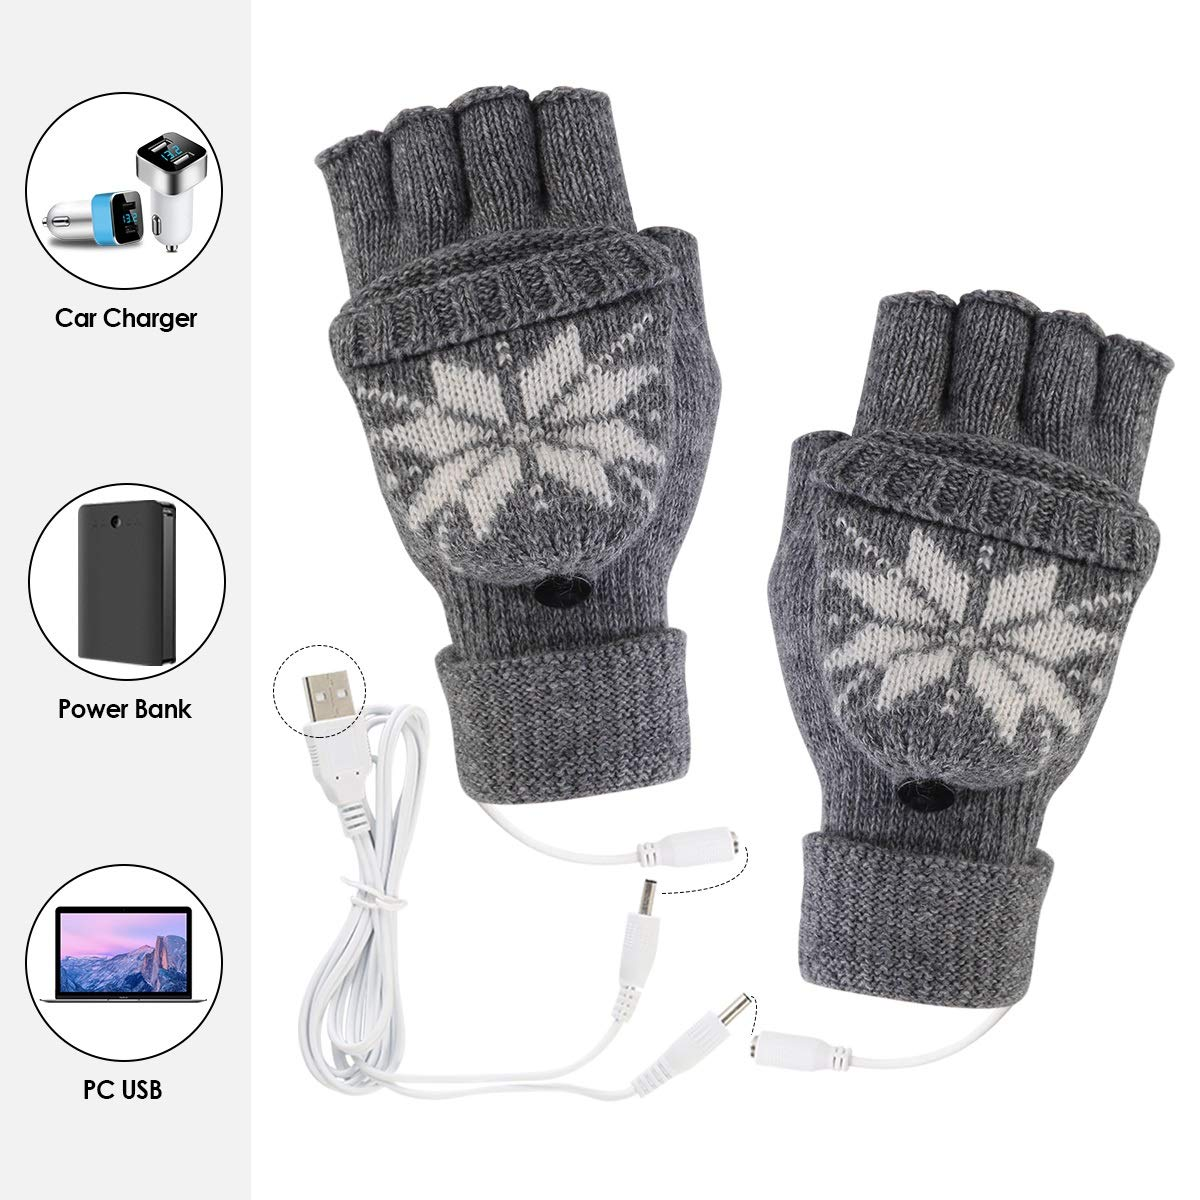 5V USB Powered Two-Sided Heating Heated Gloves Winter Hand Warmer Gloves Warm Typing Gloves Color : Gold